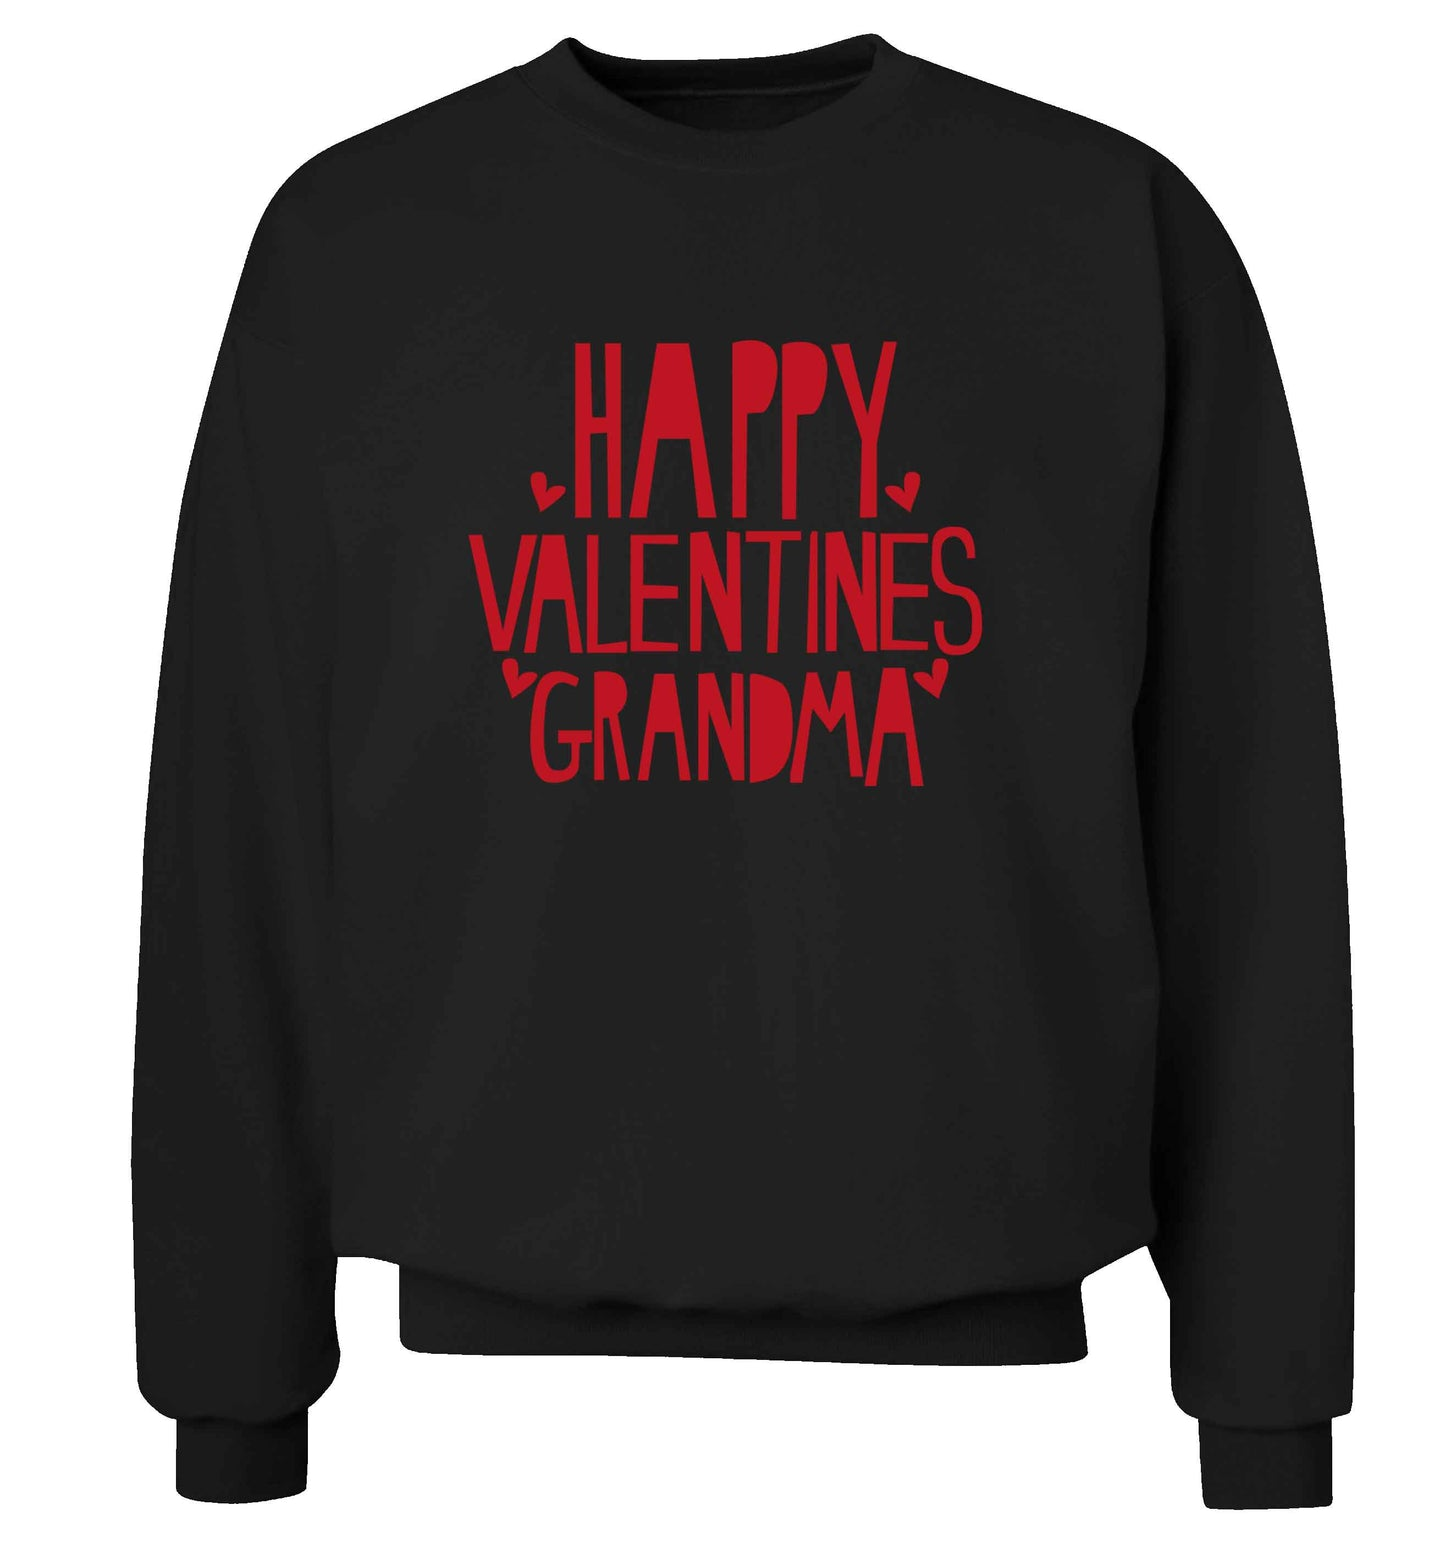 Happy valentines grandma adult's unisex black sweater 2XL